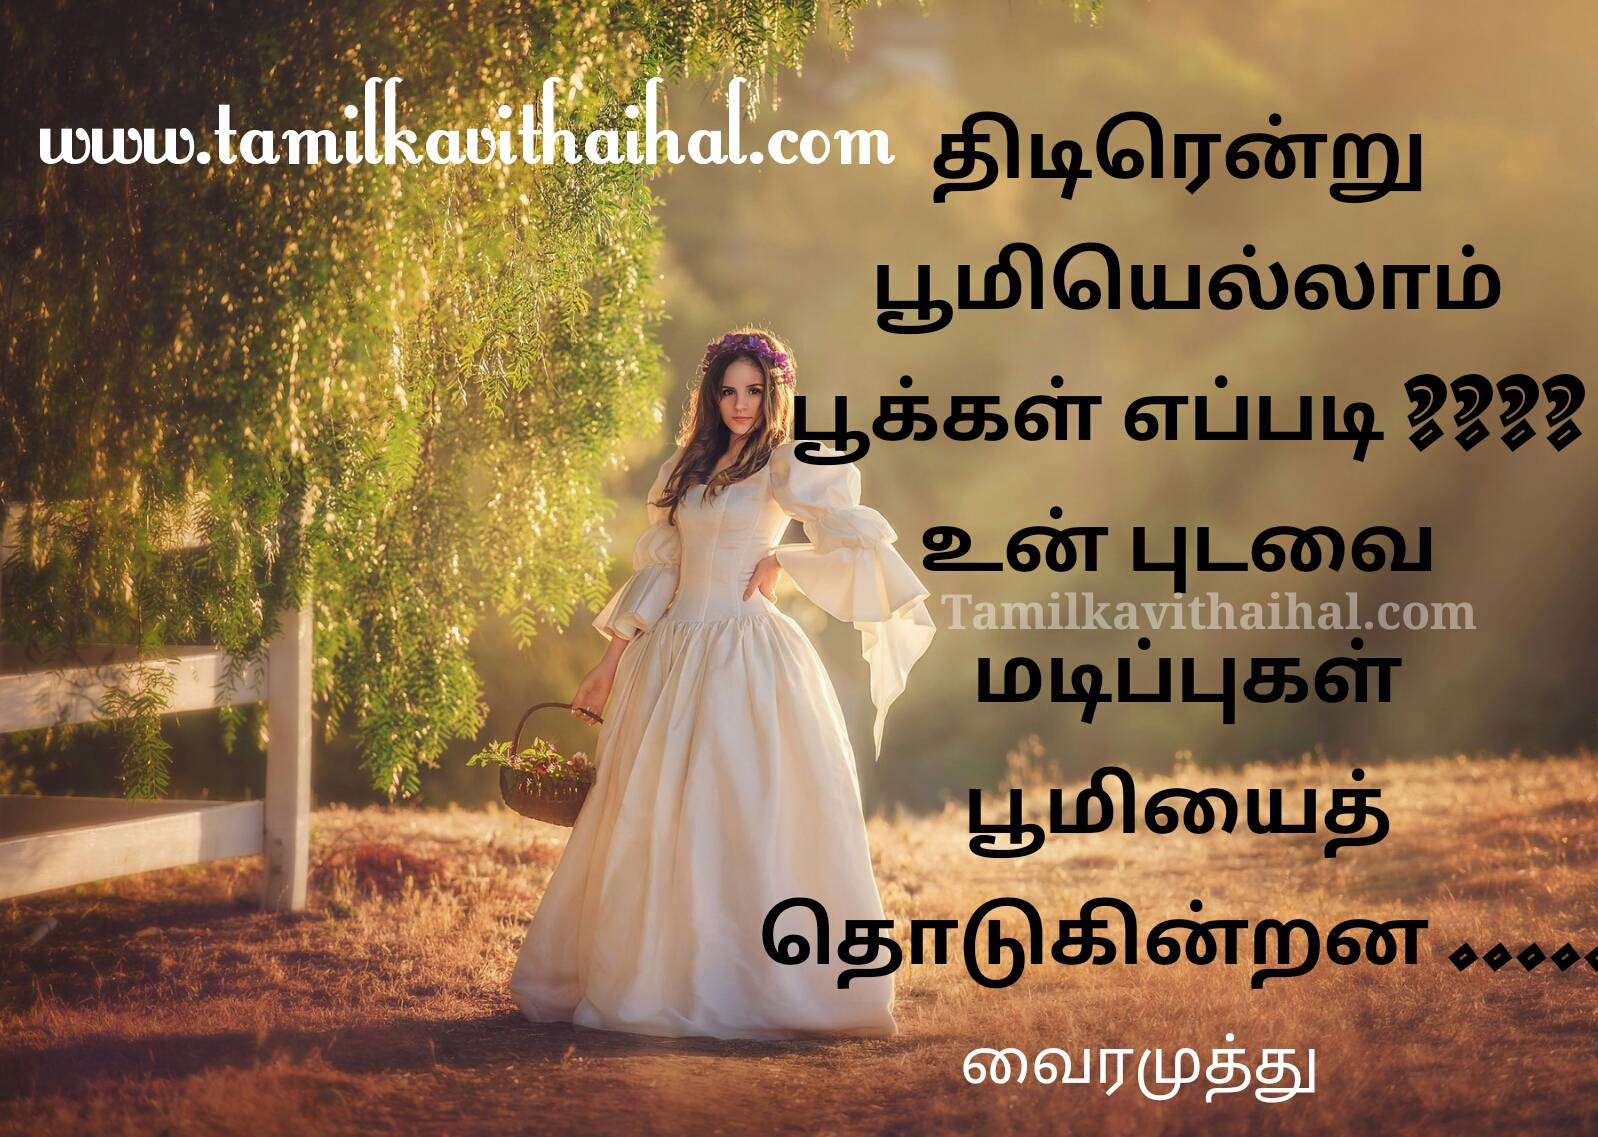 Beautiful tamil kavithai for vairamuthu kadhal romance feel lovers cute proposal husbend and wife affection image download